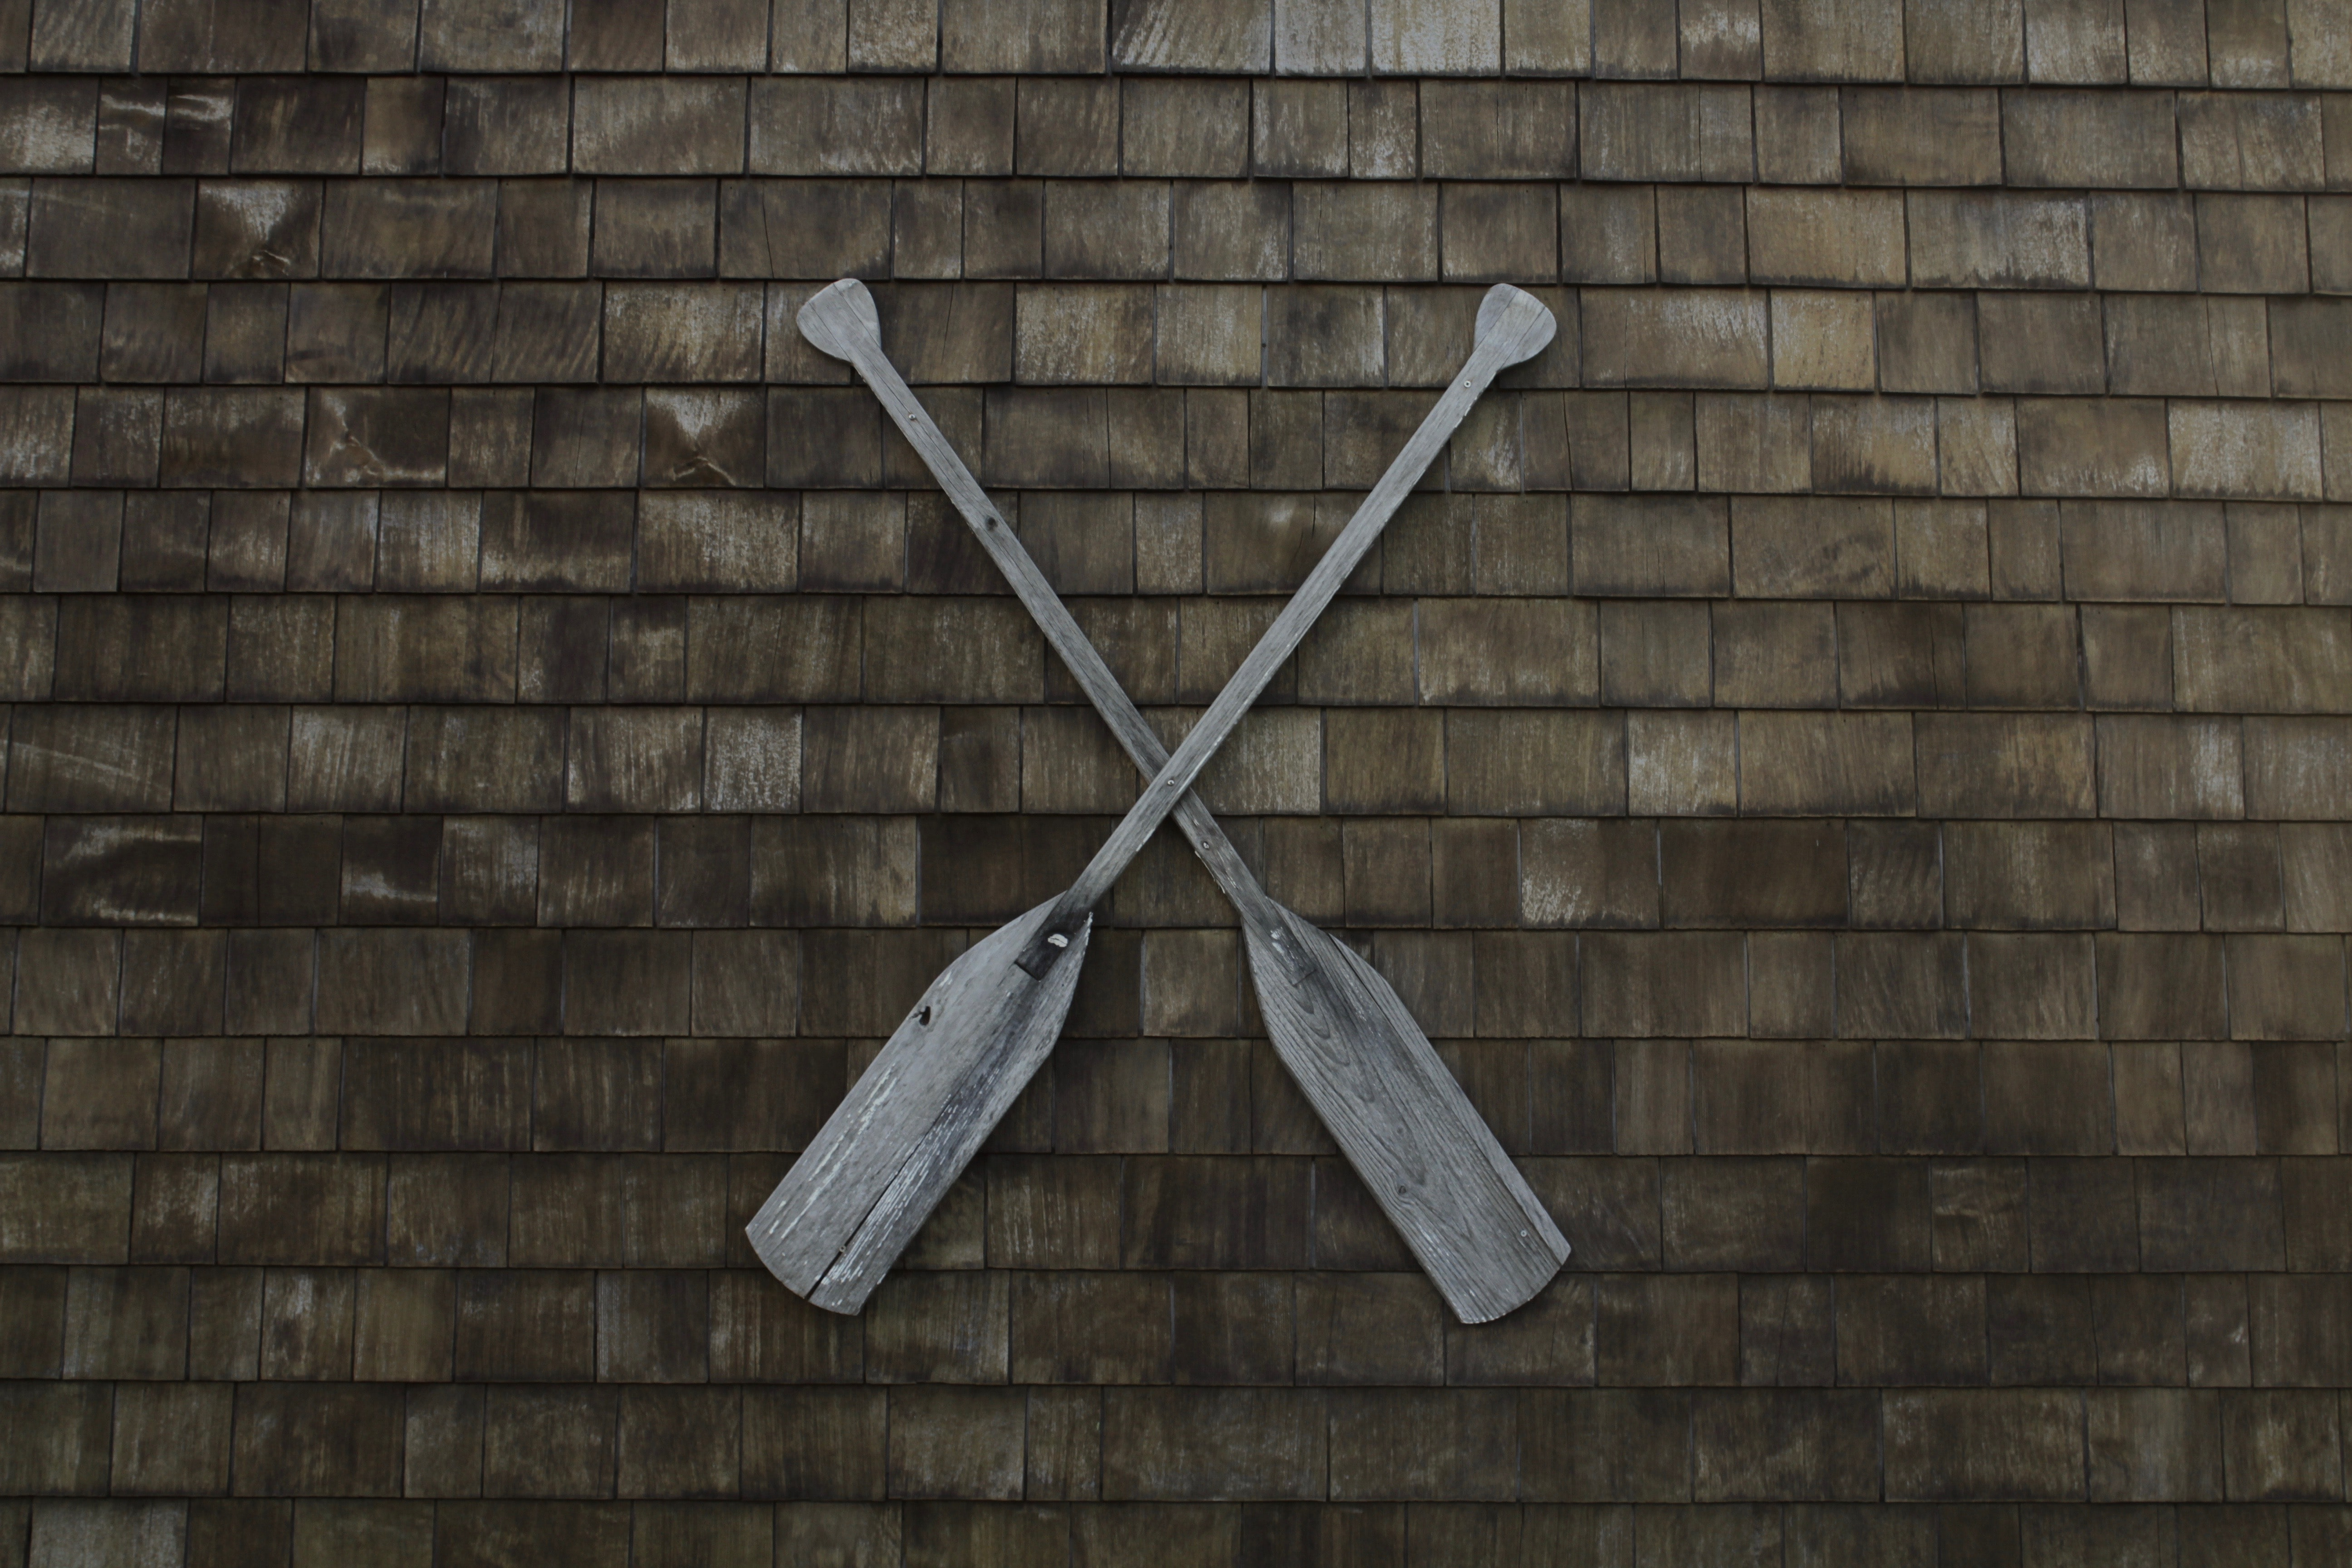 Two wooden oars crossed together on a wall